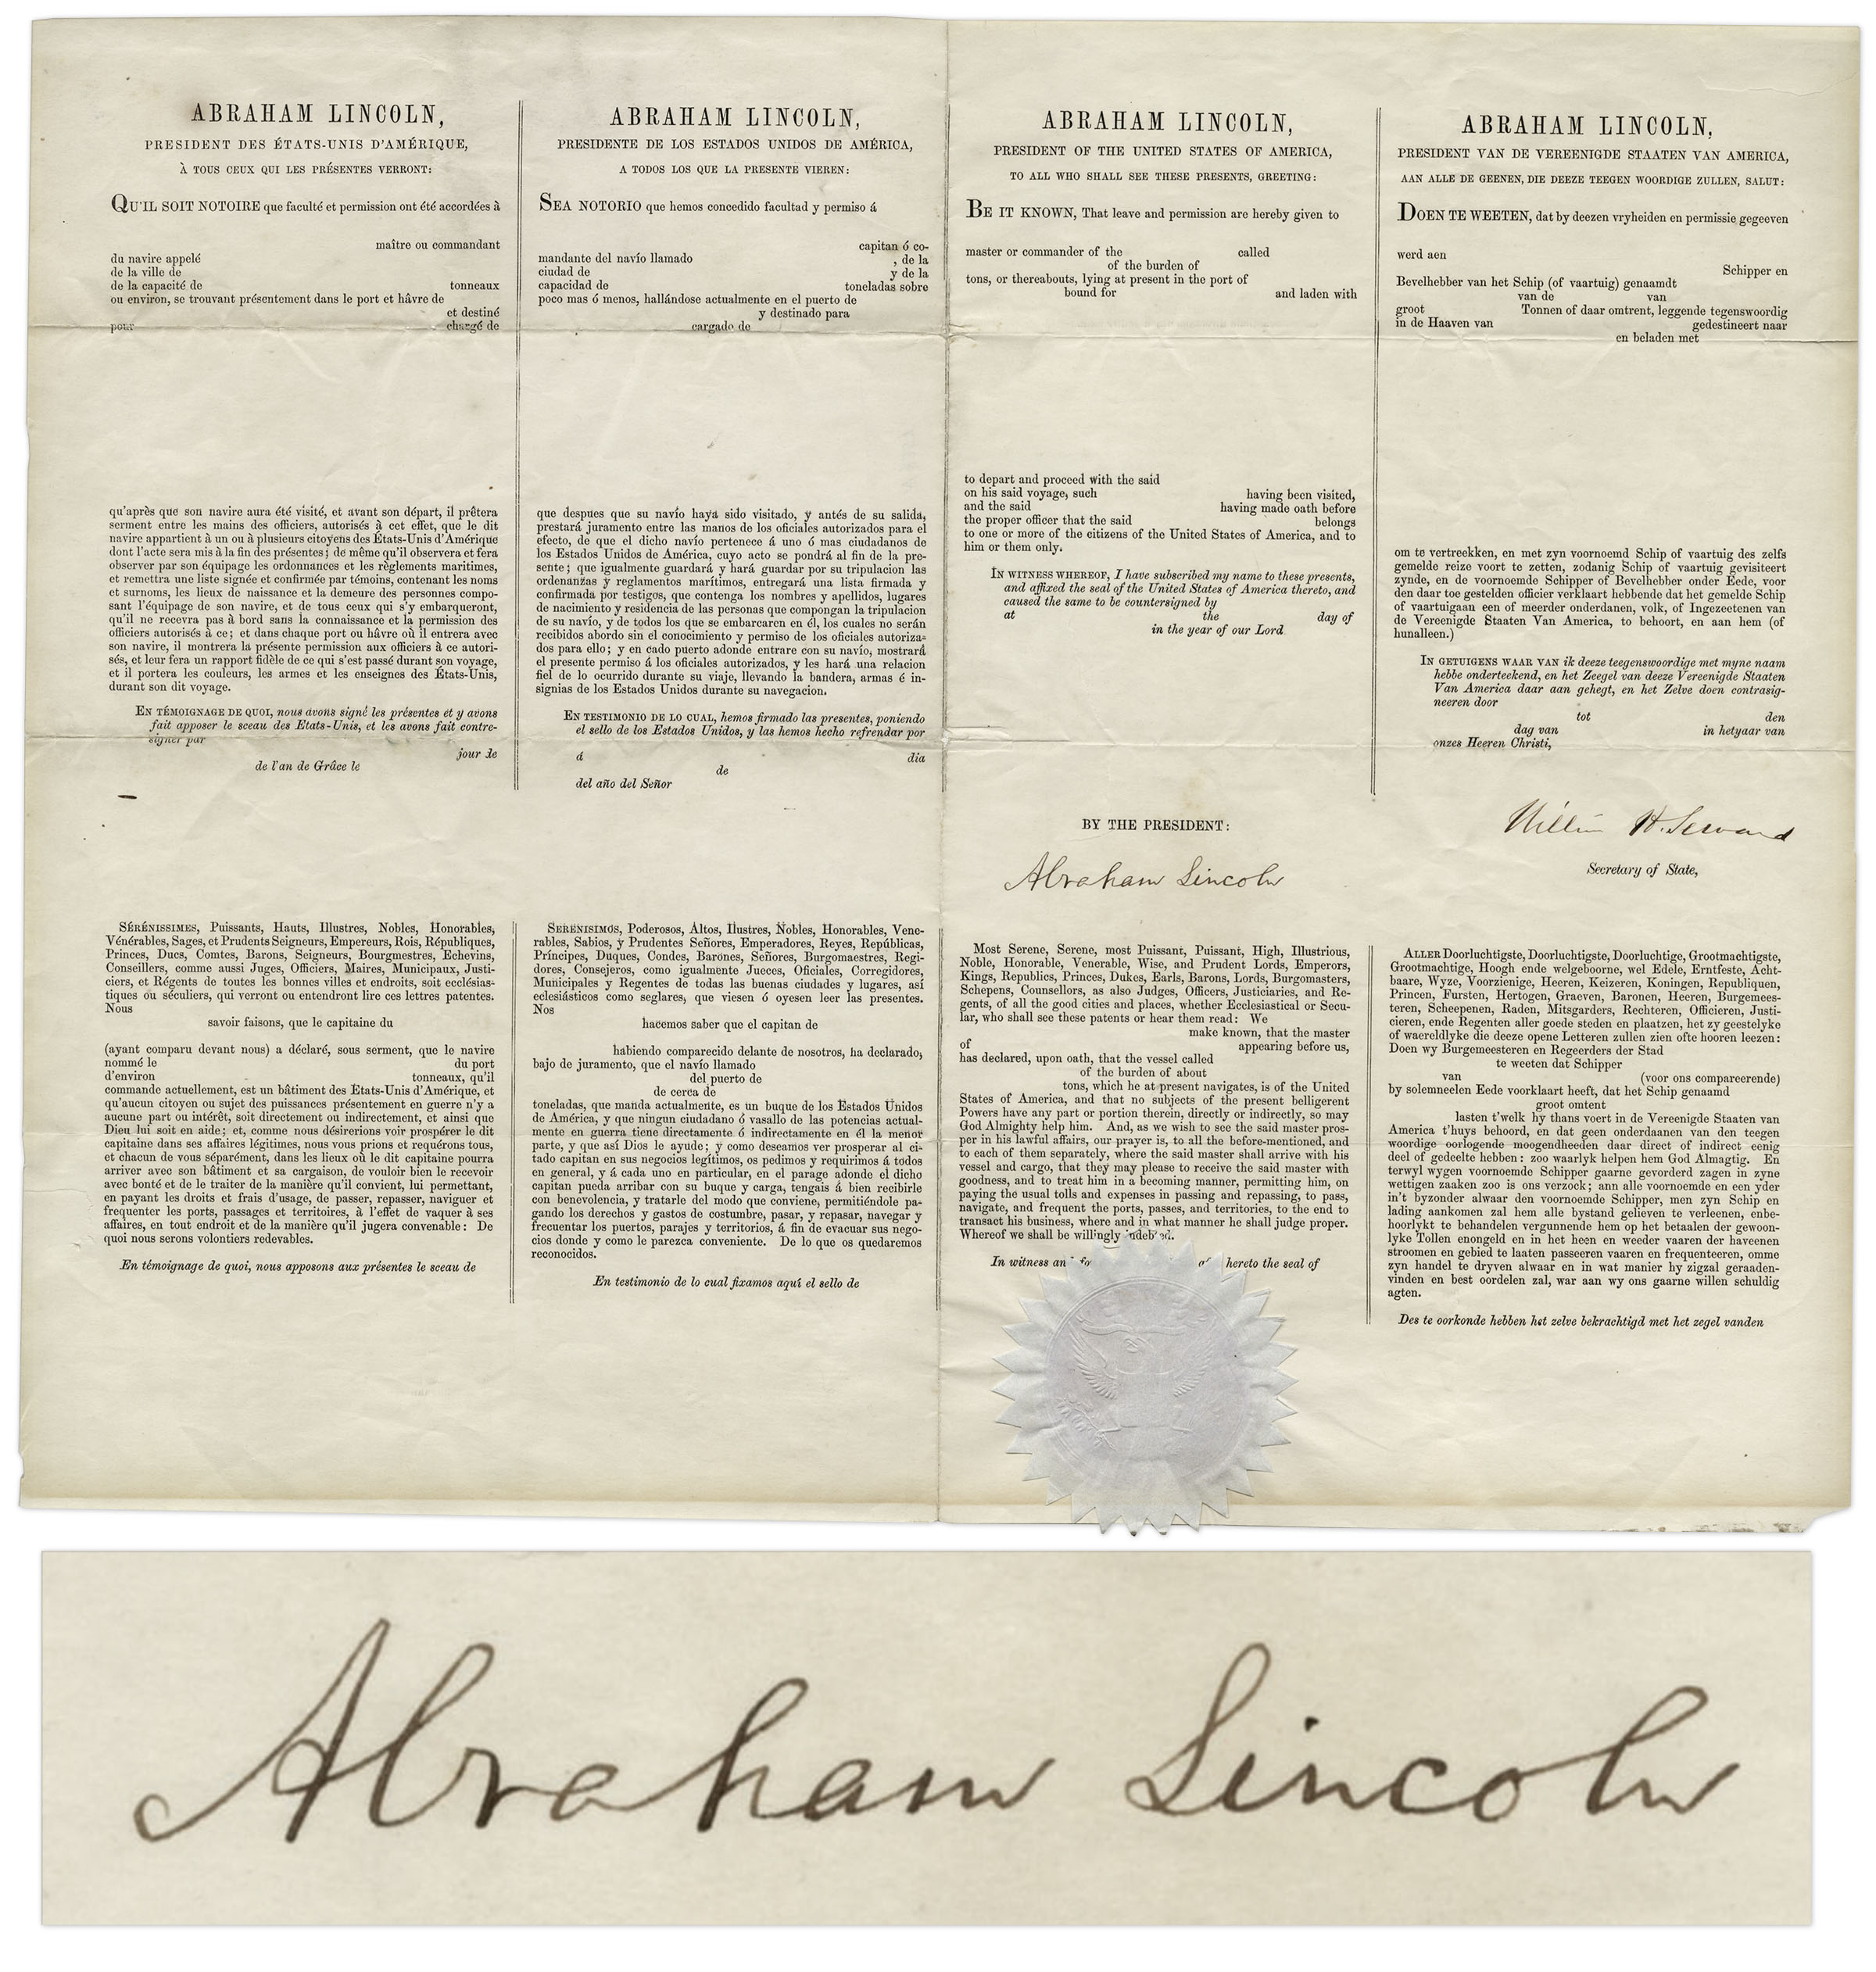 thesis statement president lincoln Did lincoln overstep his bounds as president which of lincoln's many wartime policies do you find most objectionable, and why.